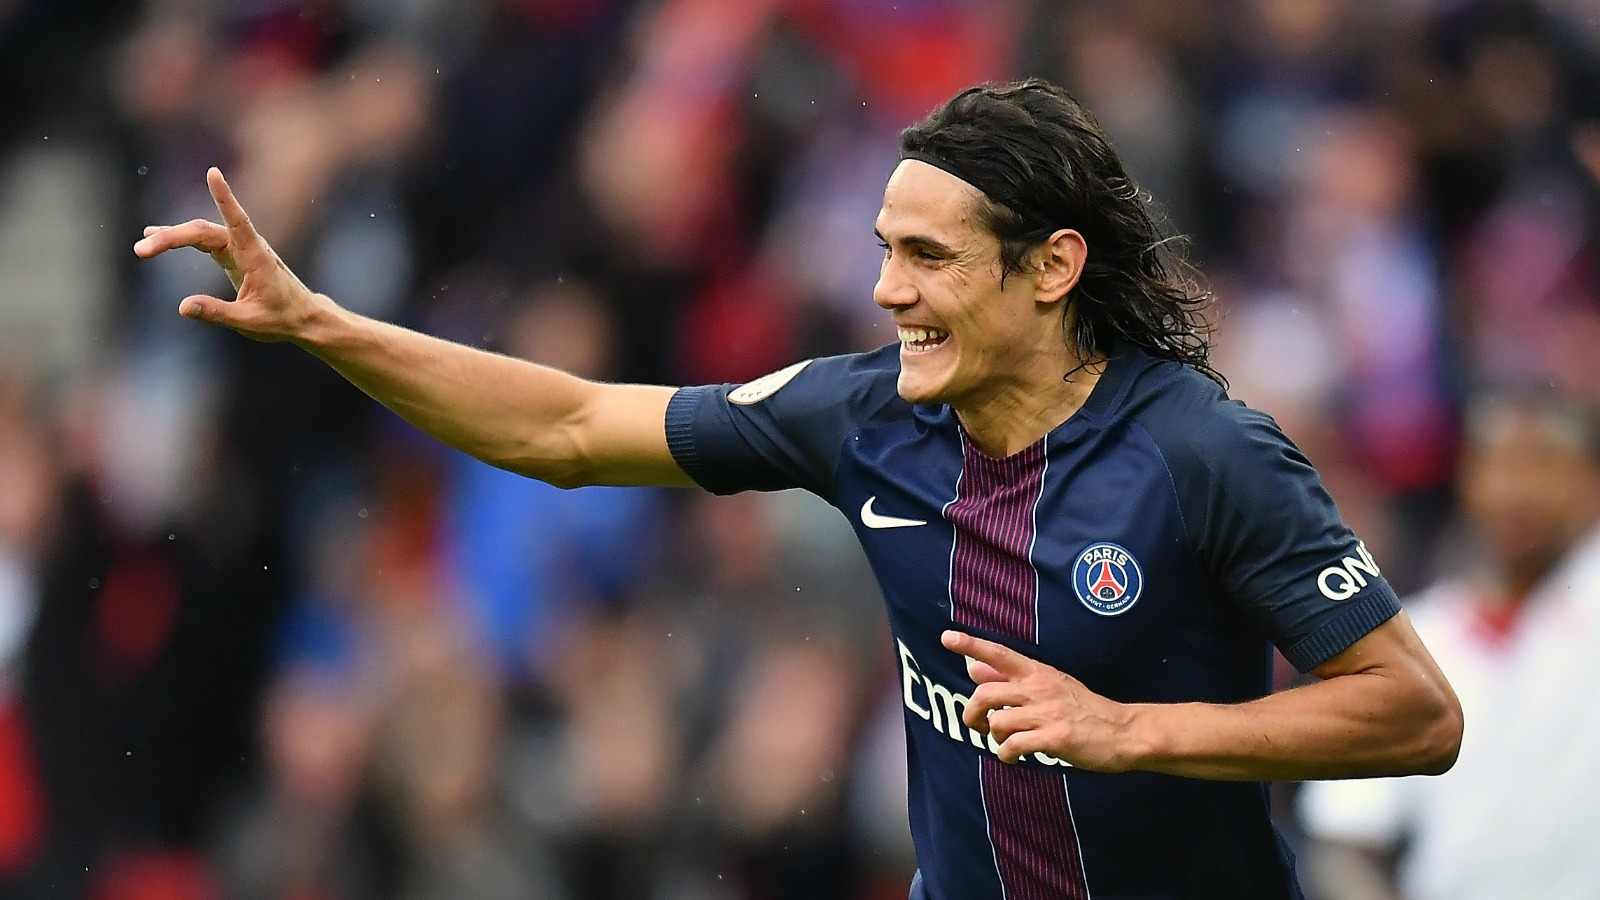 Edinson Cavani's backheel goal shouldn't have counted, but we can still watch and enjoy